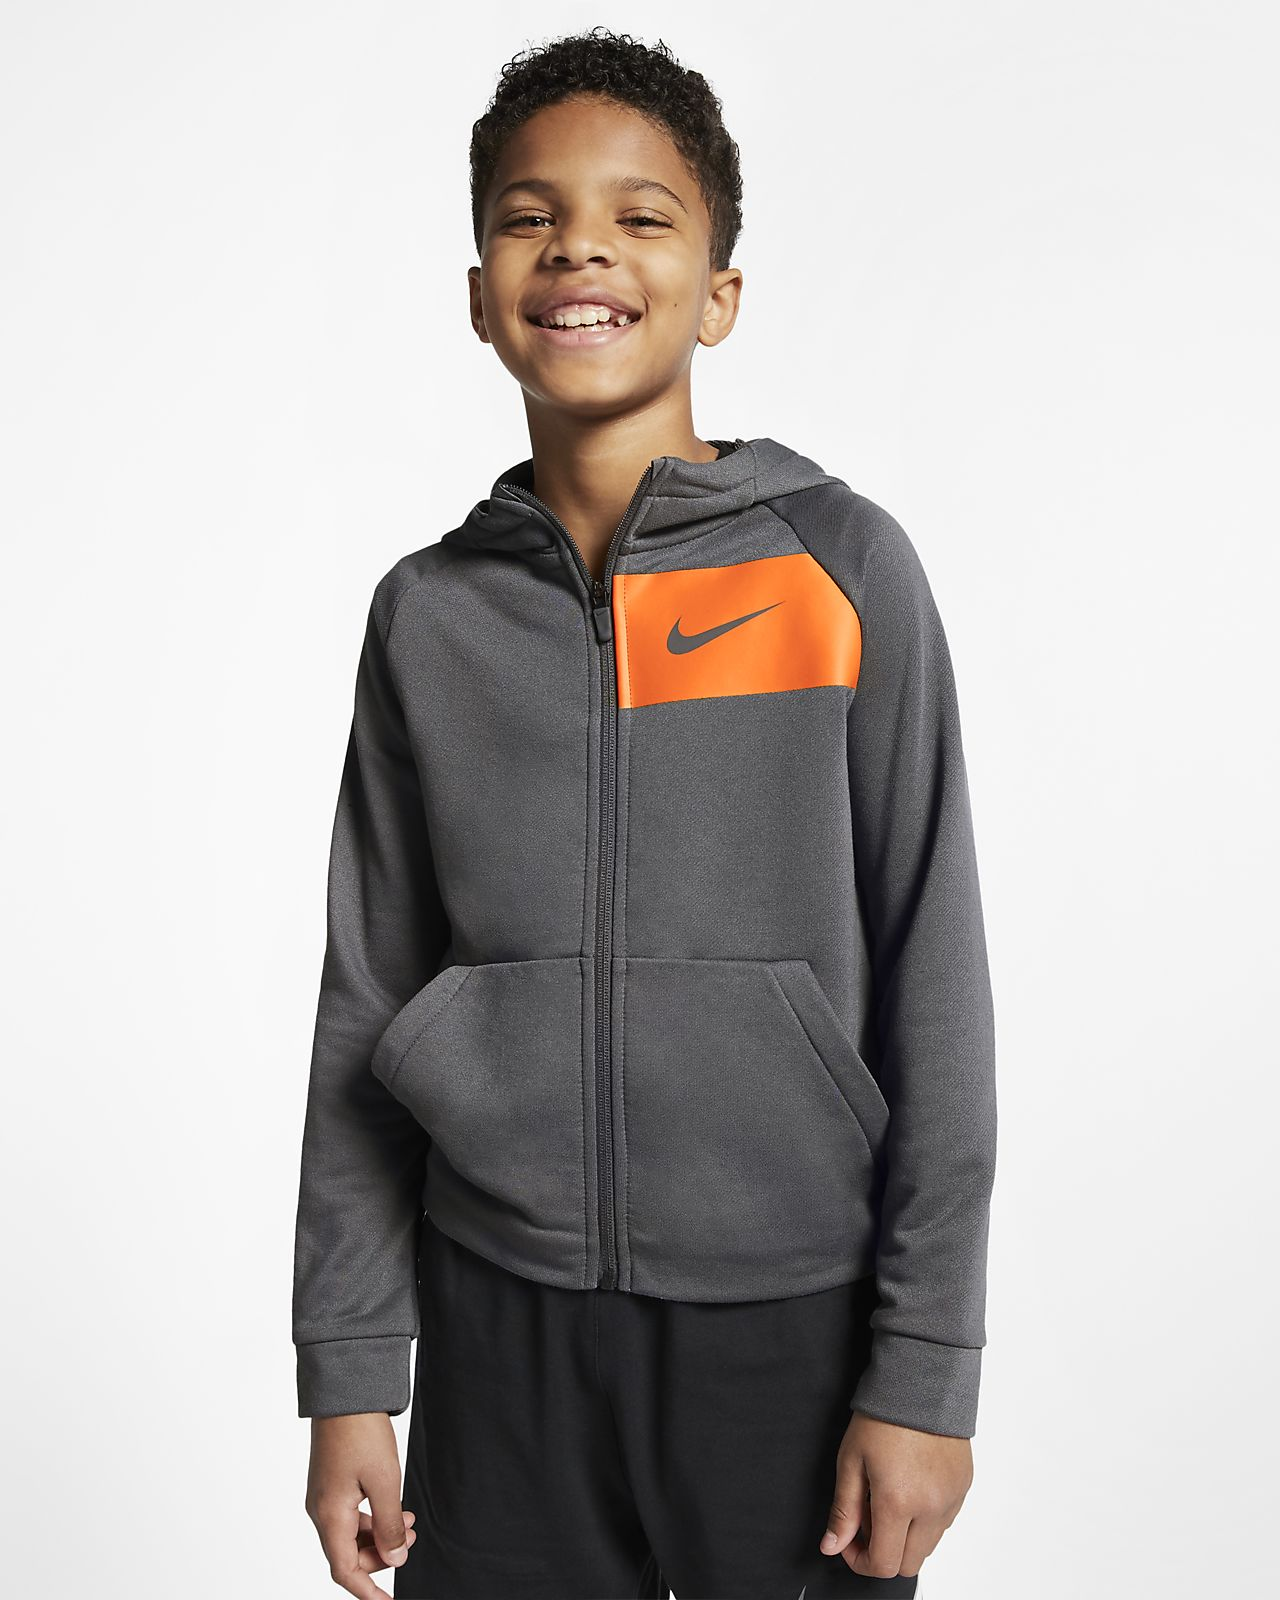 Nike Dri-FIT Older Kids' Full-Zip Training Hoodie